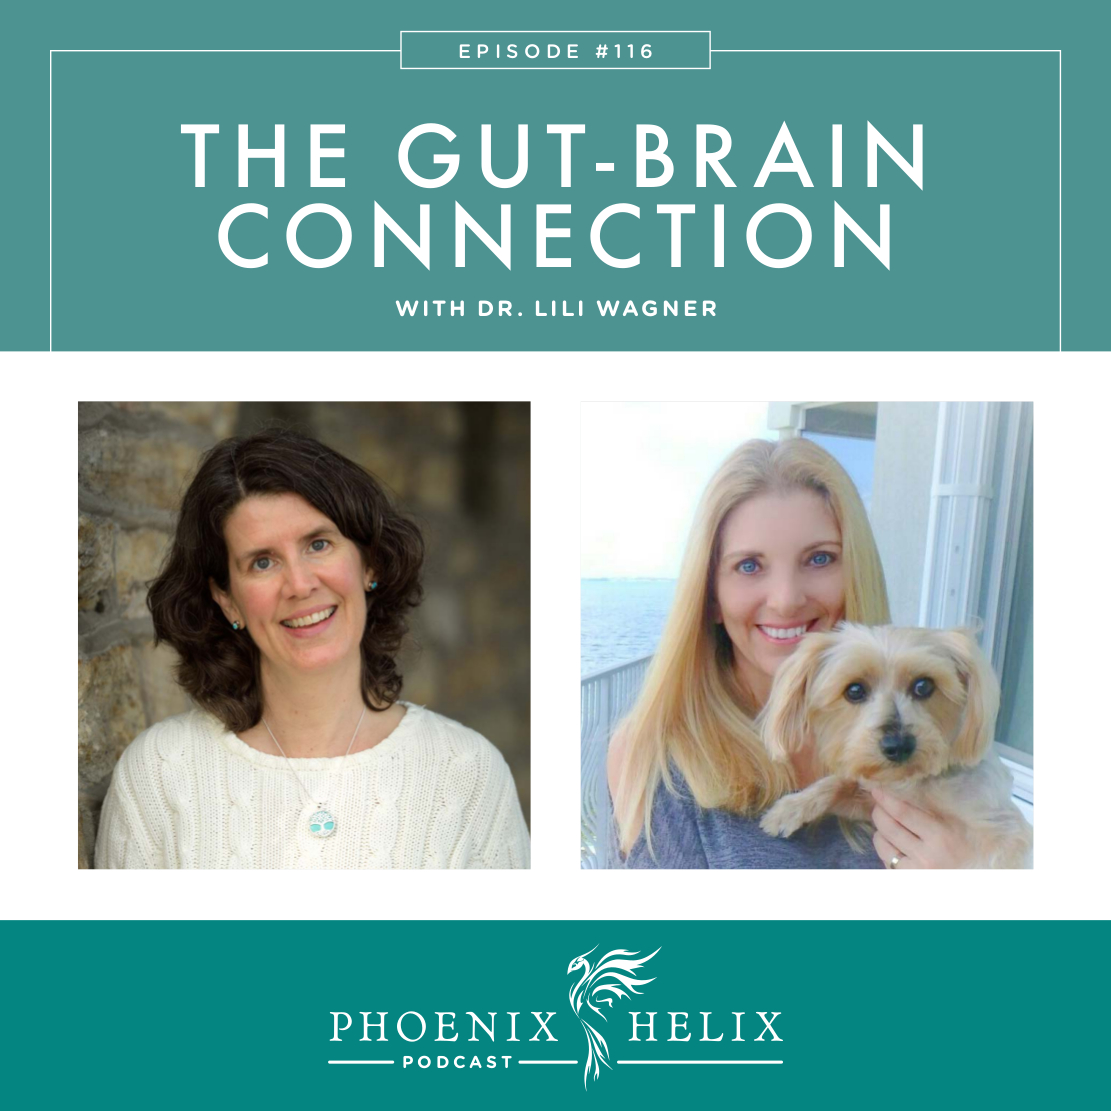 The Gut-Brain Connection with Dr. Lili Wagner | Phoenix Helix Podcast